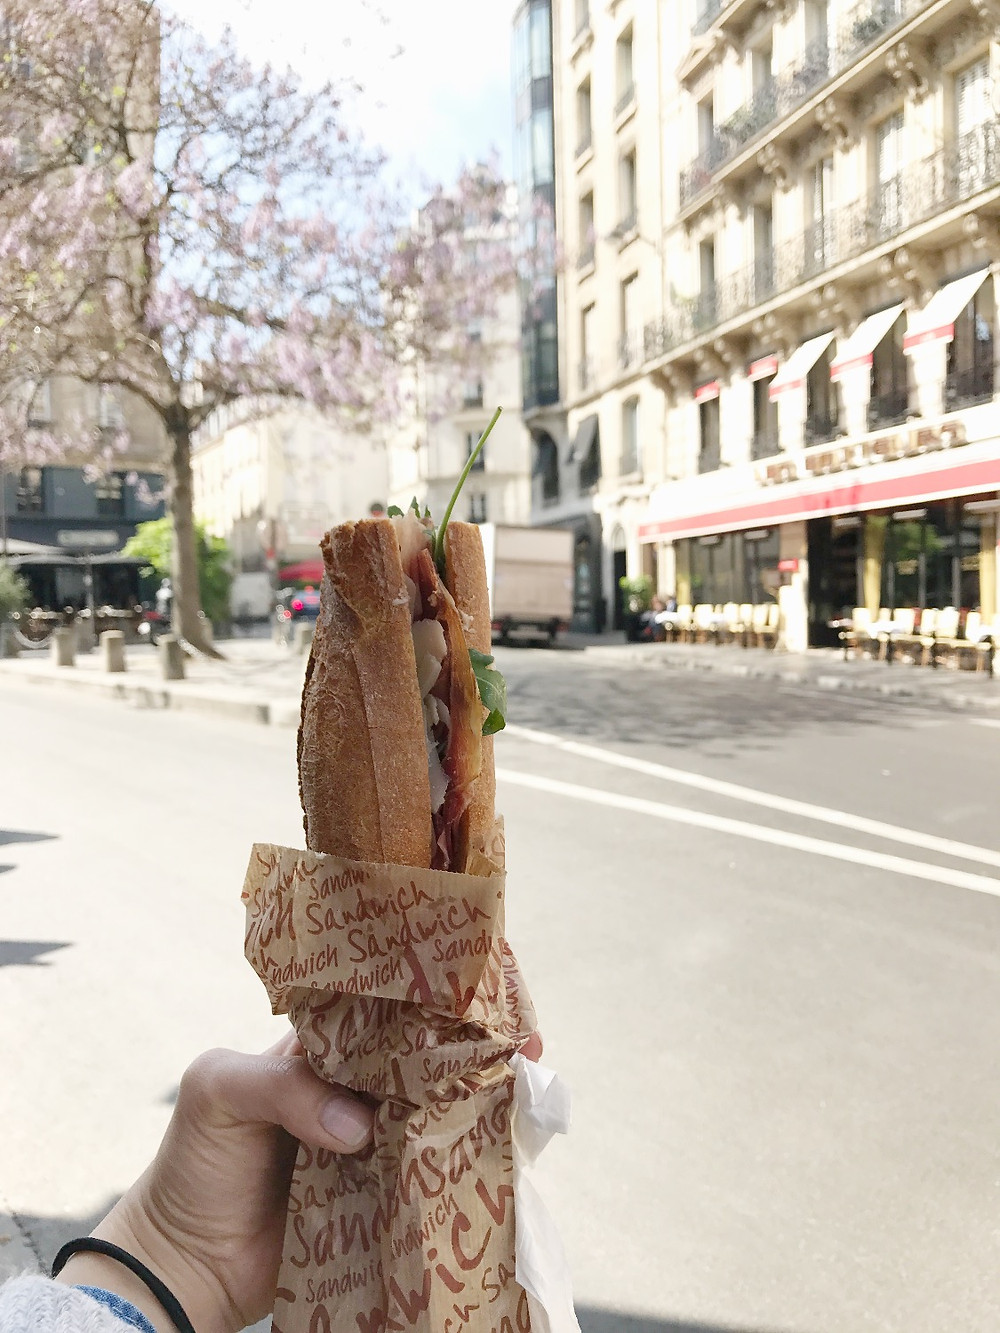 Baguettes for lunch